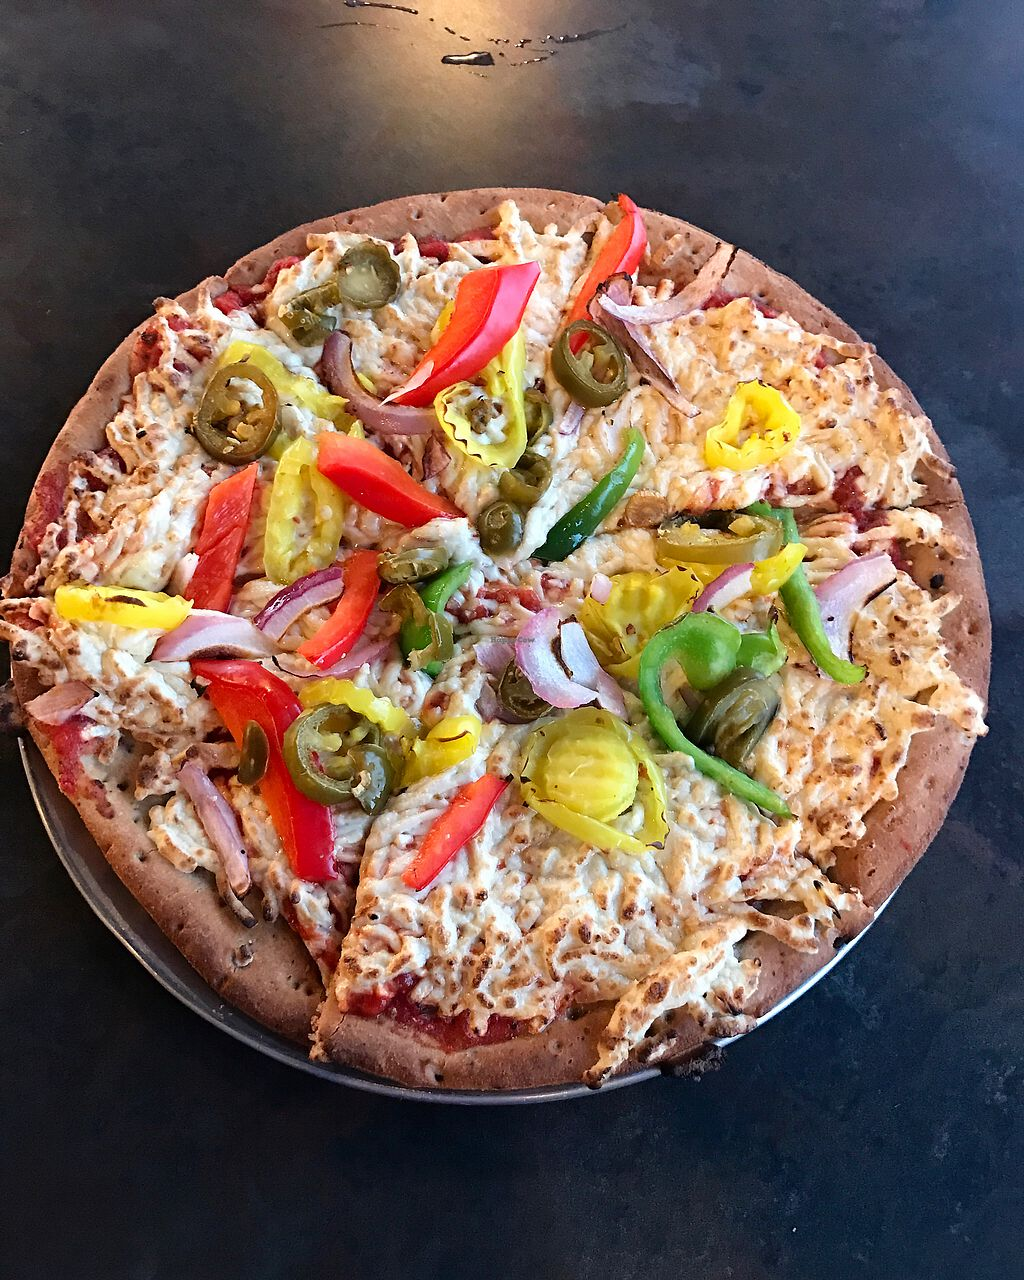 "Photo of Pie Five Pizza  by <a href=""/members/profile/ShannonTremblay"">ShannonTremblay</a> <br/>Gluten free crust and vegan cheese.  <br/> September 9, 2017  - <a href='/contact/abuse/image/98490/302276'>Report</a>"